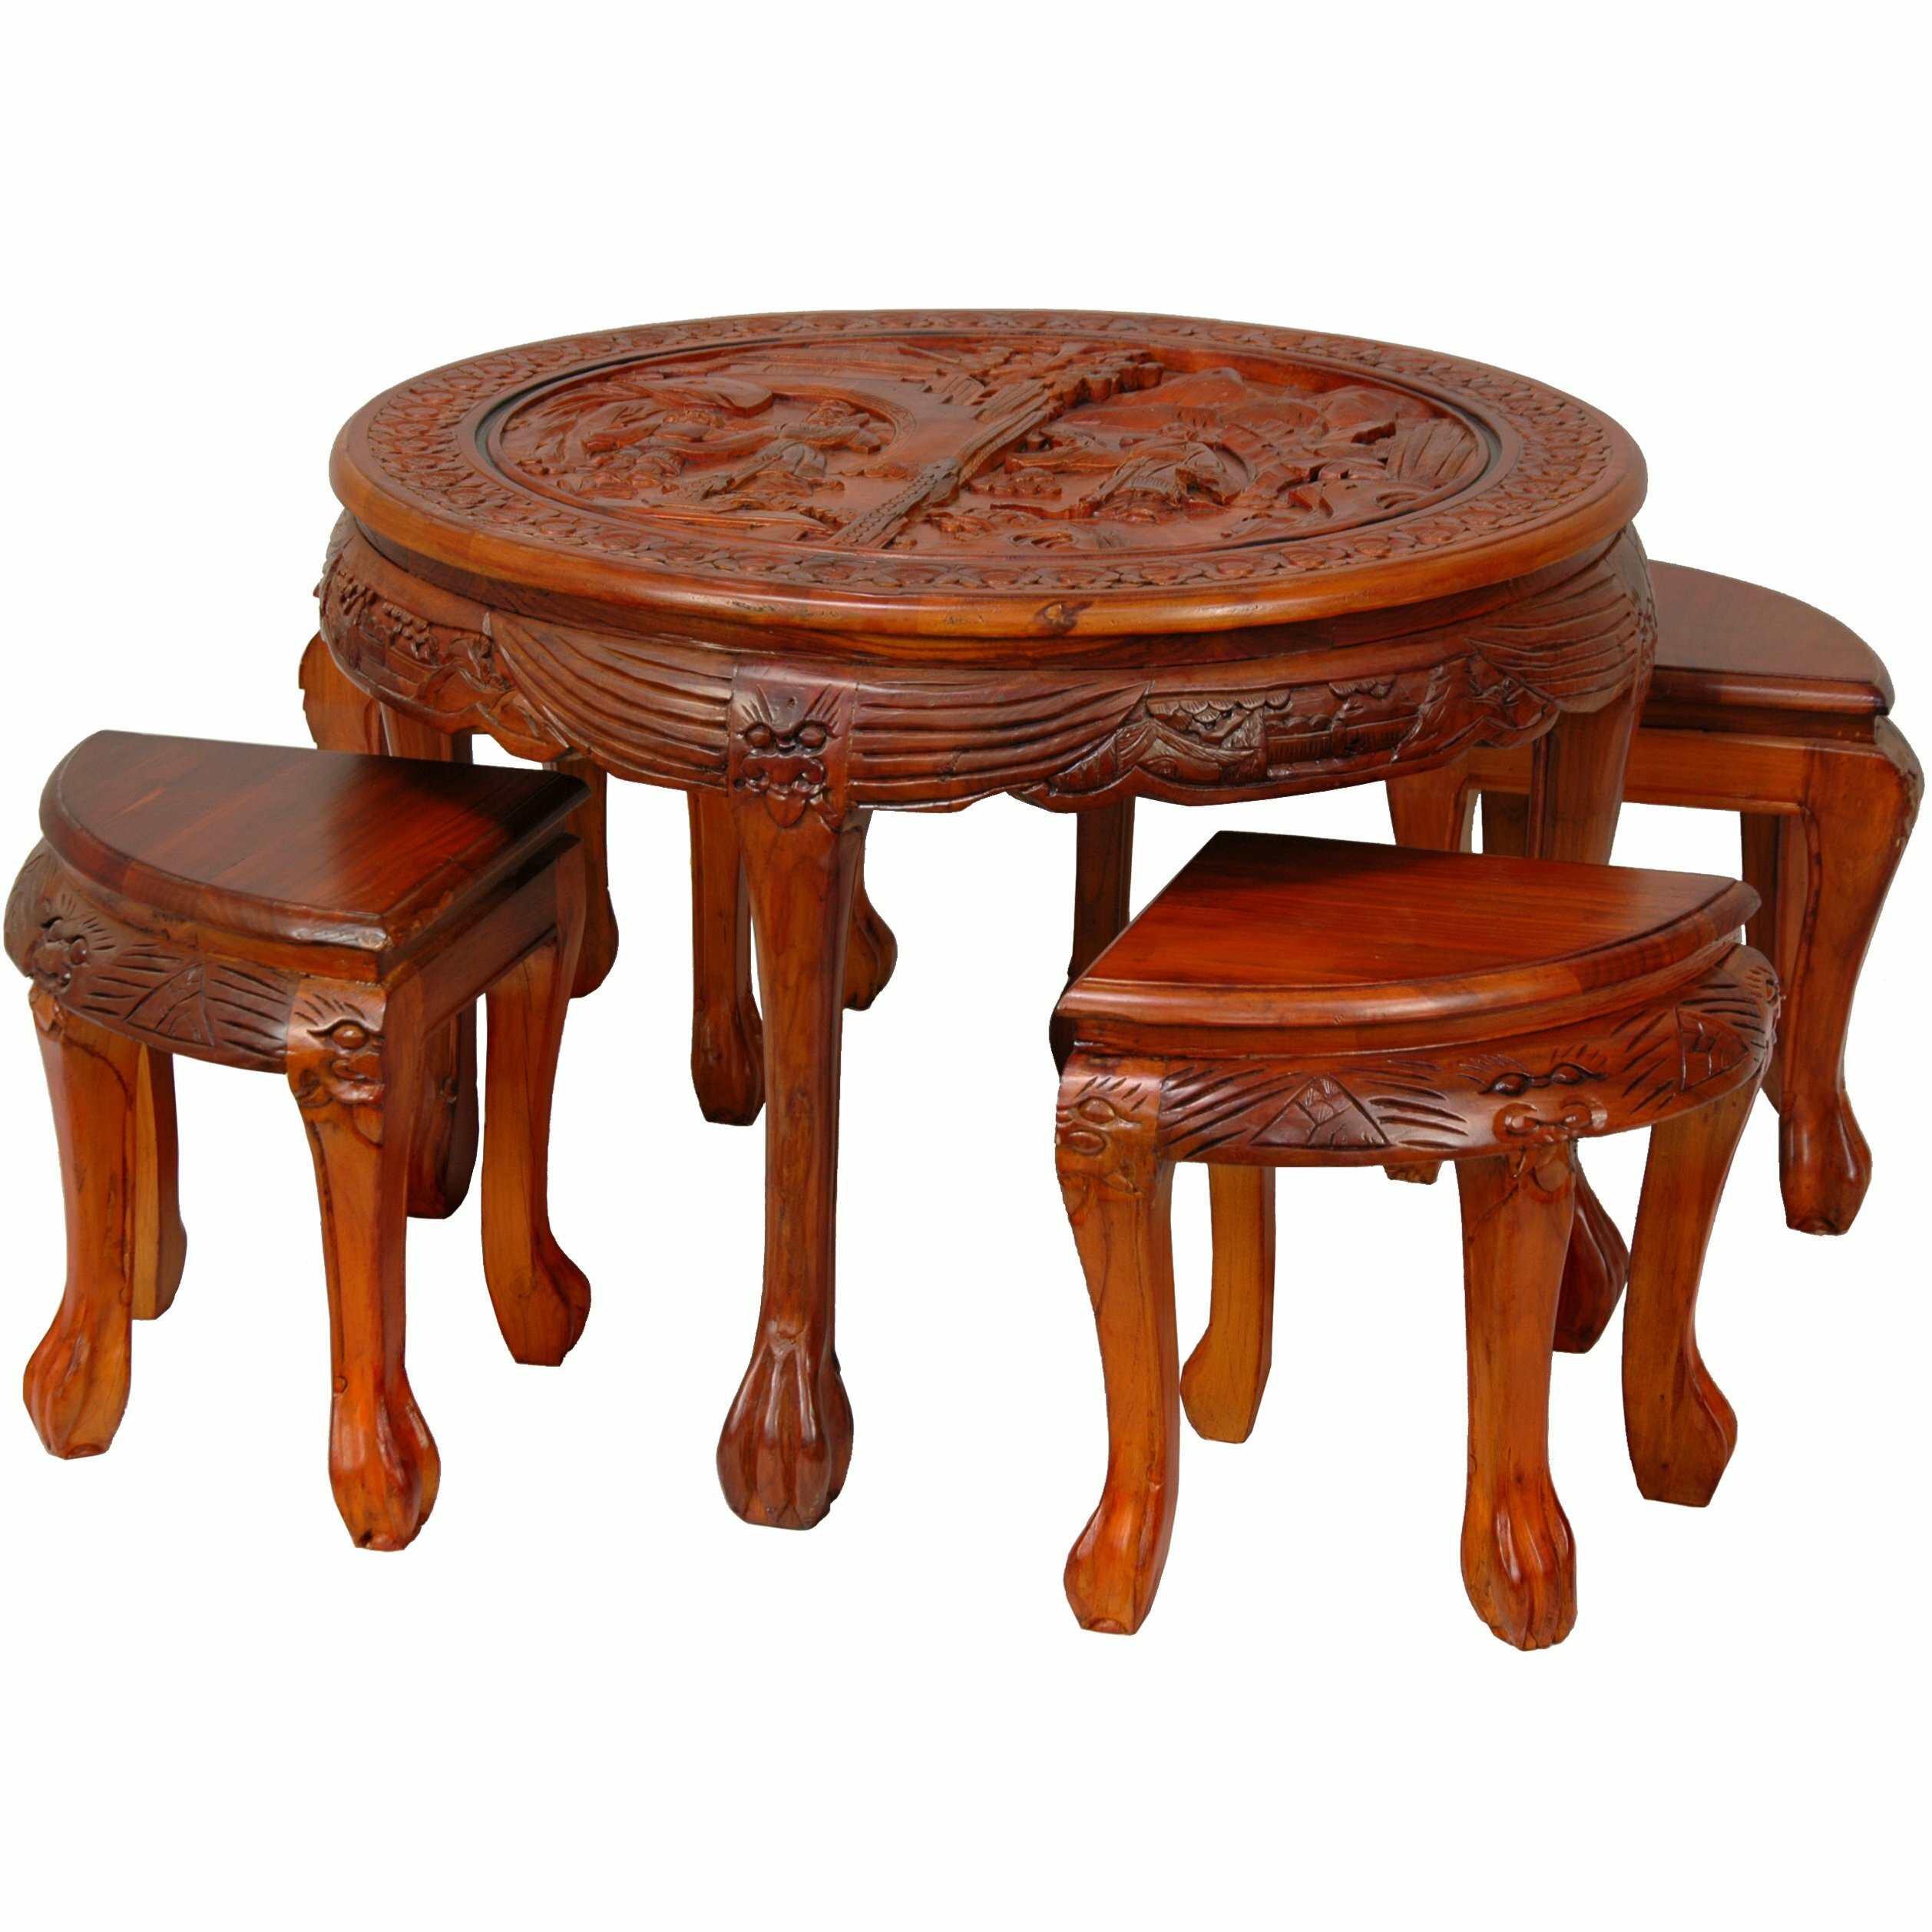 Carved circular coffee table with stool wayfair for Square coffee table with stools